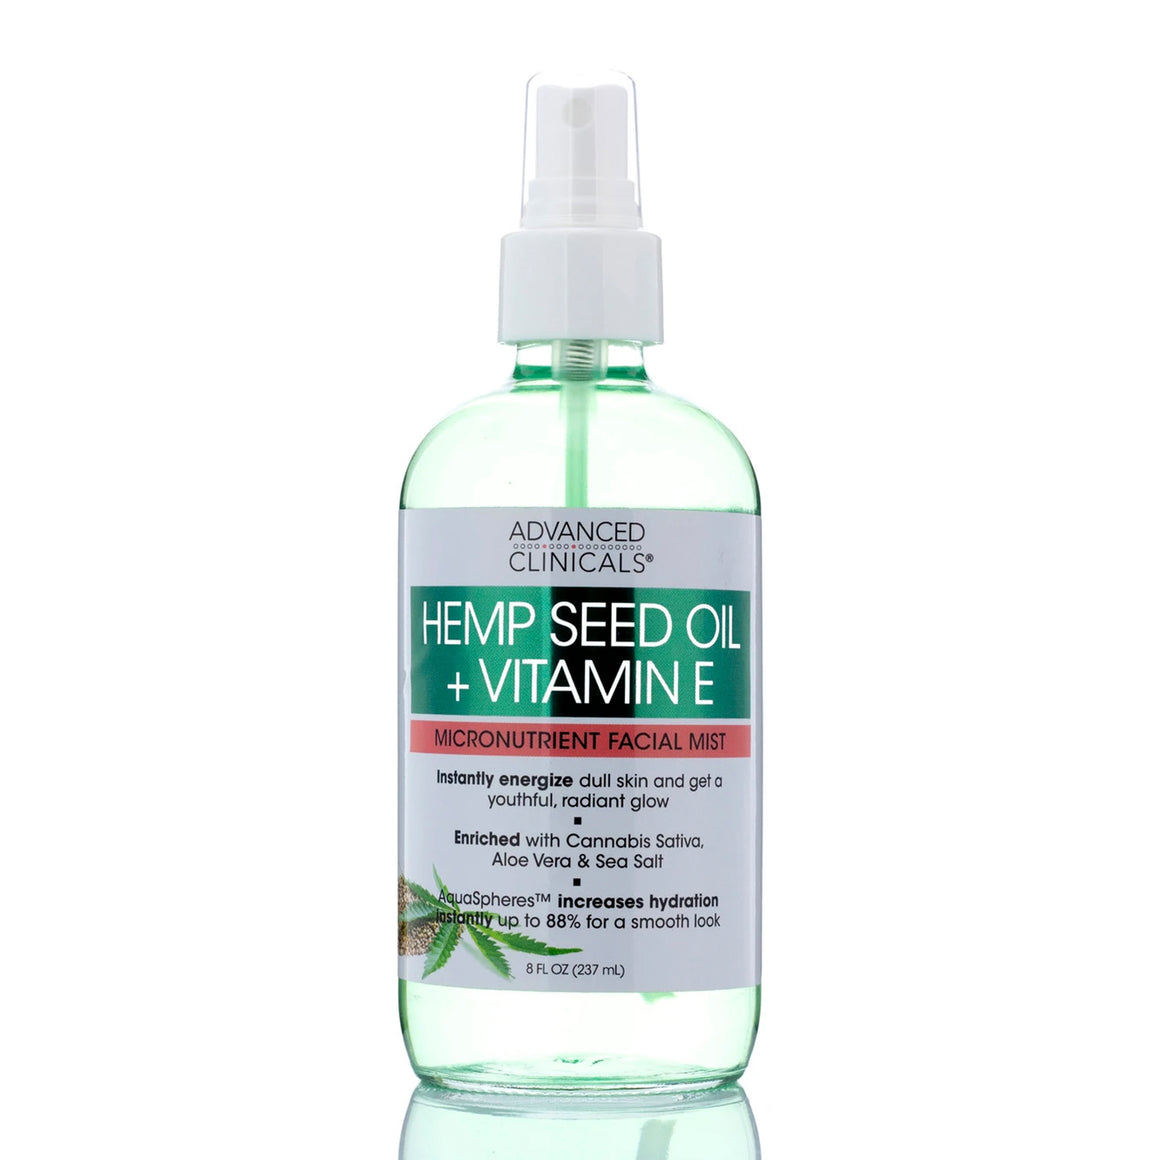 8oz hemp seed oil and vitamin E, aloe vera, sea salt, micronutrient facial mist, radiant glow